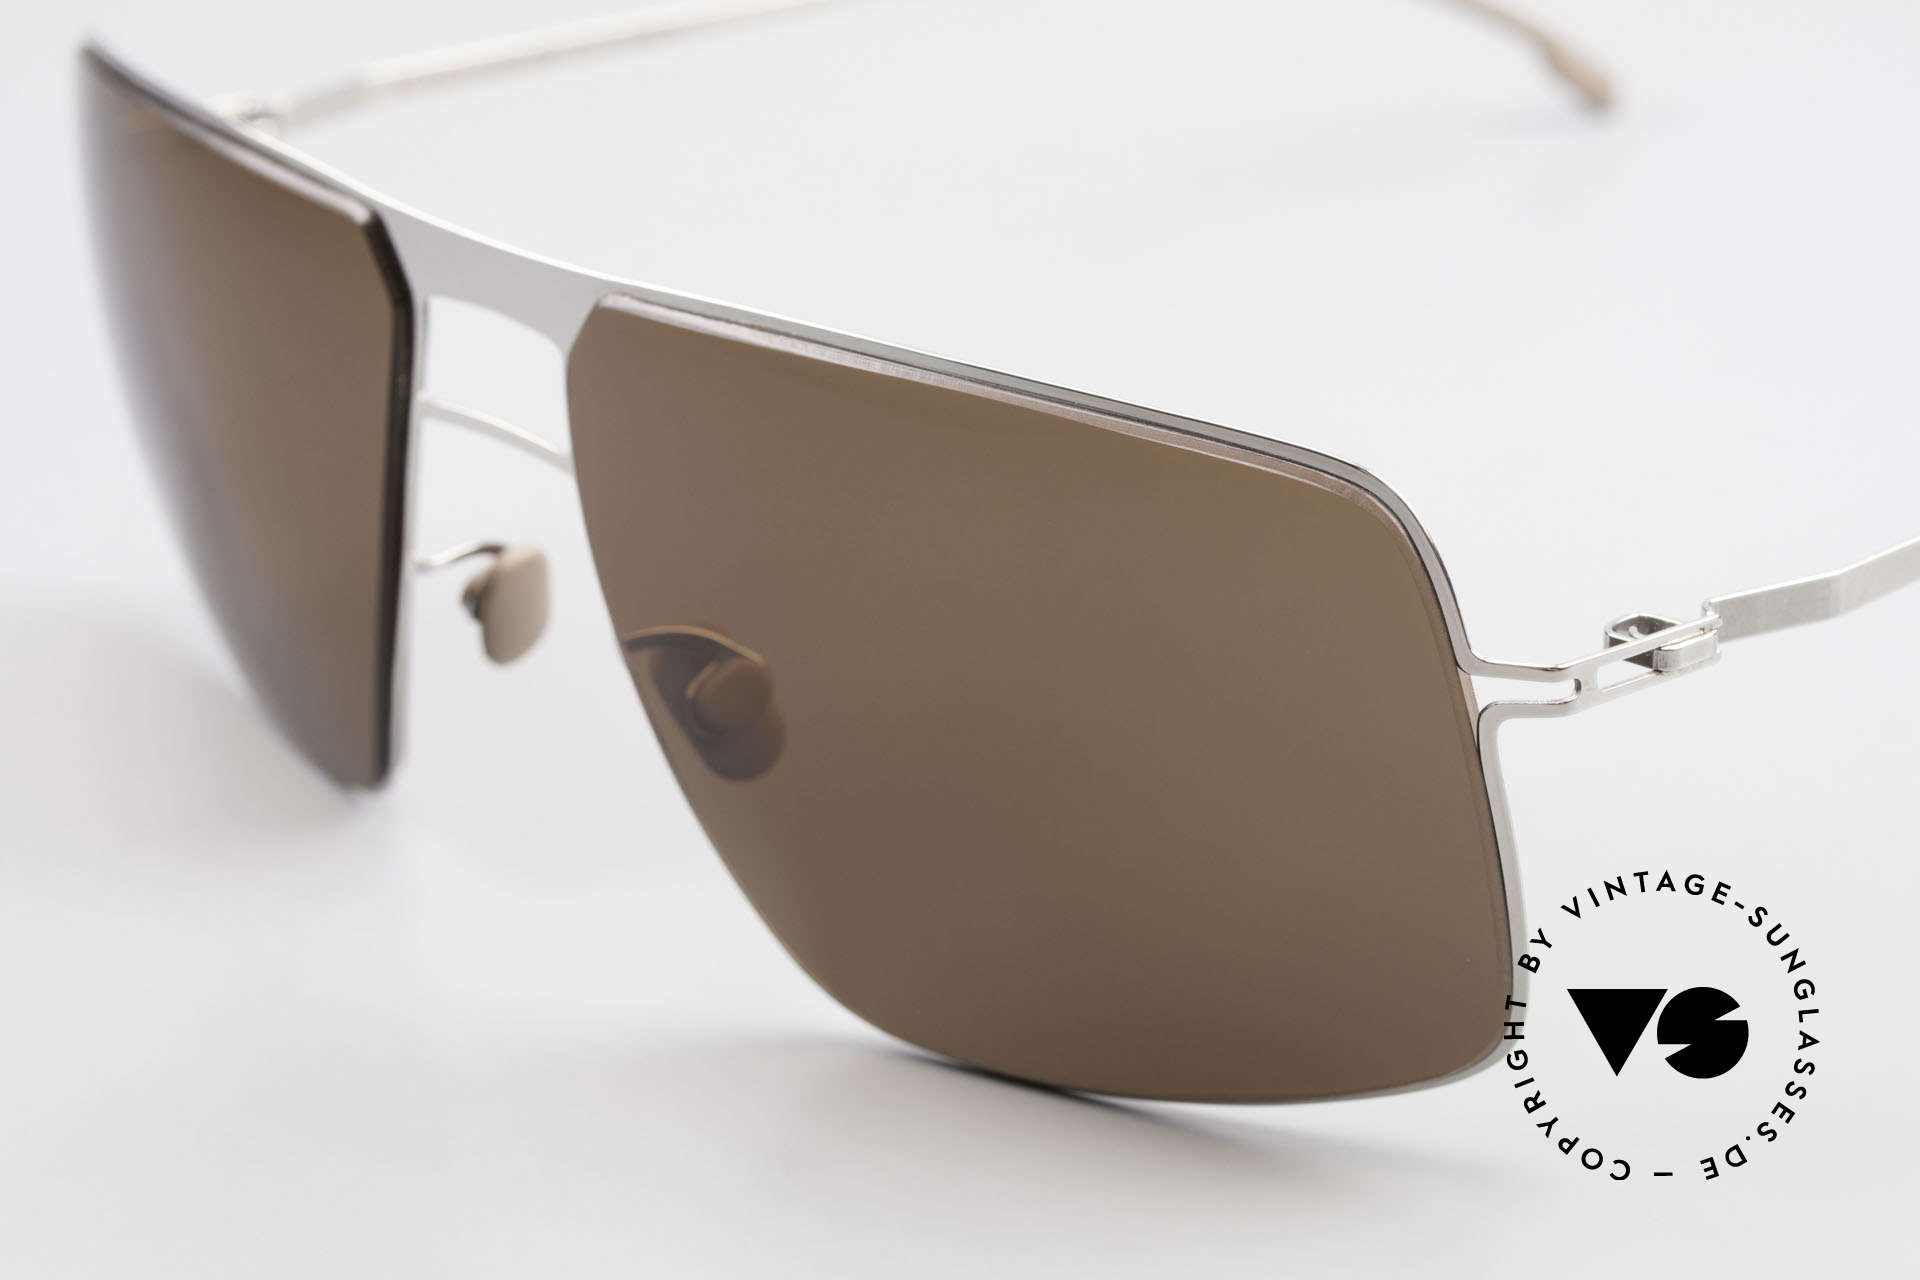 Mykita Leif Men's Designer Sunglasses 2011, innovative and flexible metal frame in Large to XL size, Made for Men